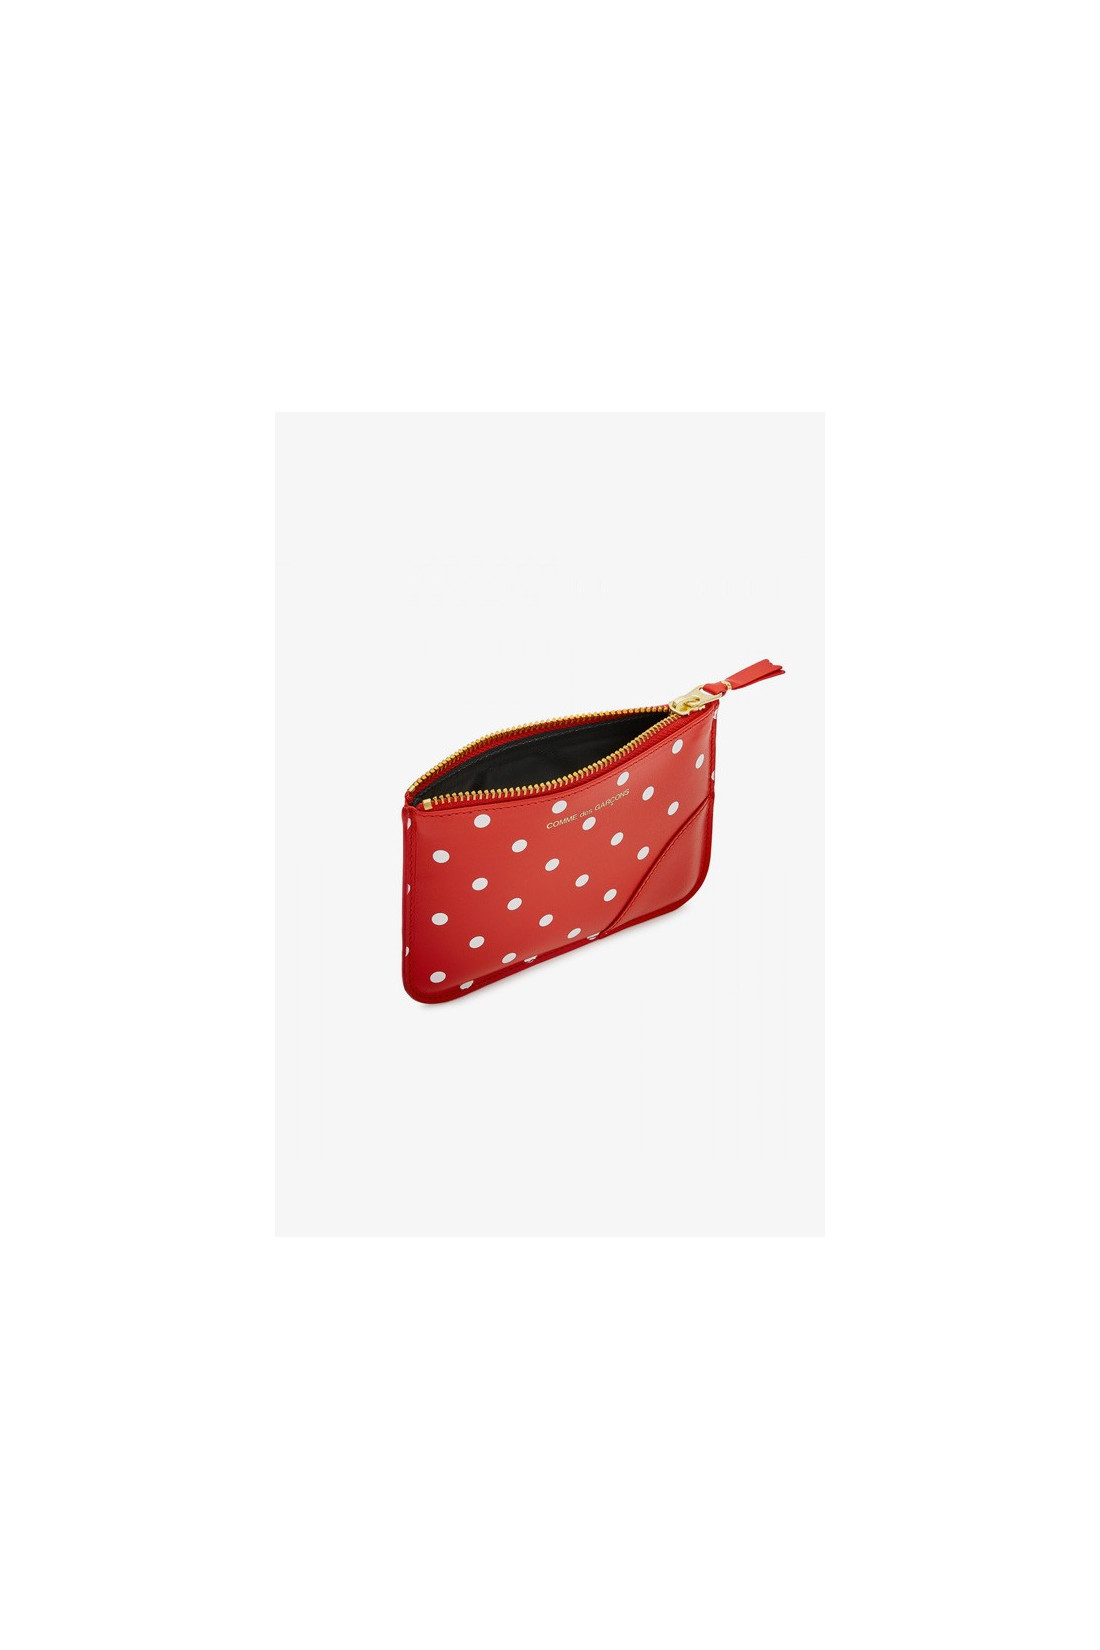 CDG WALLETS FOR WOMAN / Cdg dot leather sa8100 Red